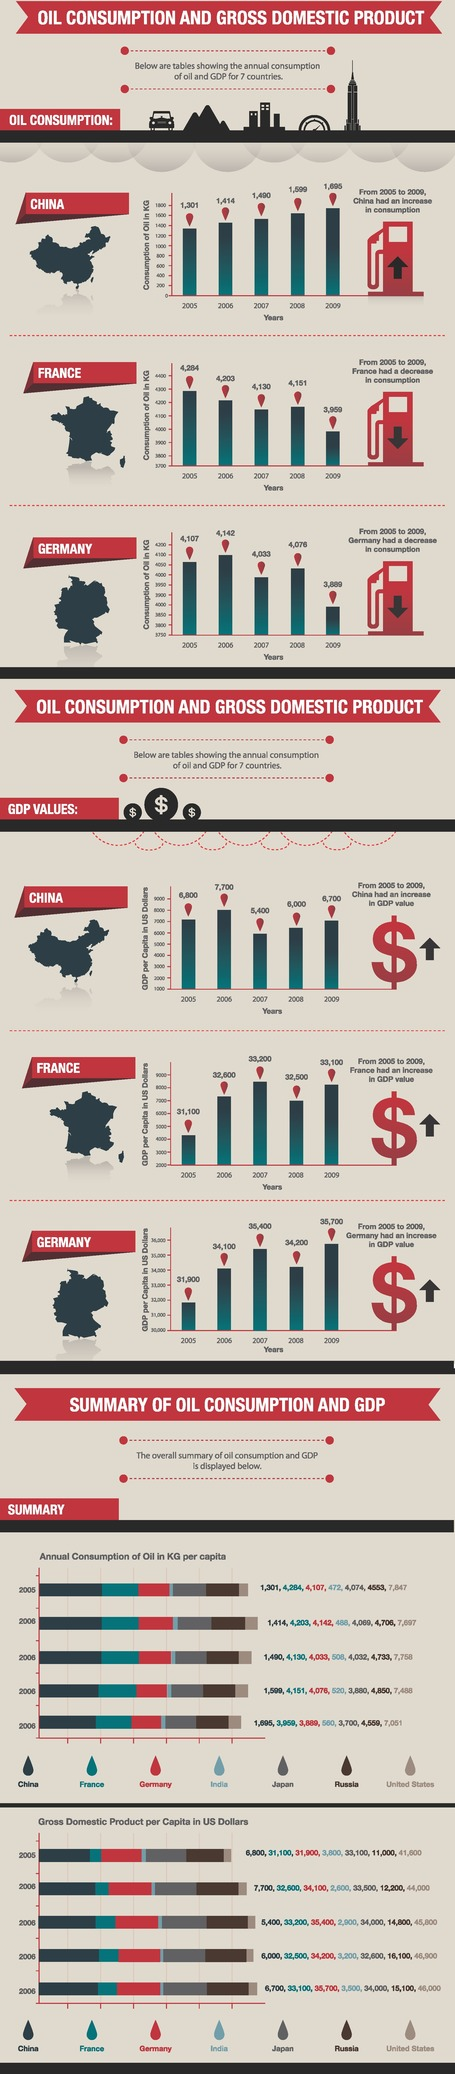 Oil Consumption and GDP [infographic] | Développement durable et efficacité énergétique | Scoop.it